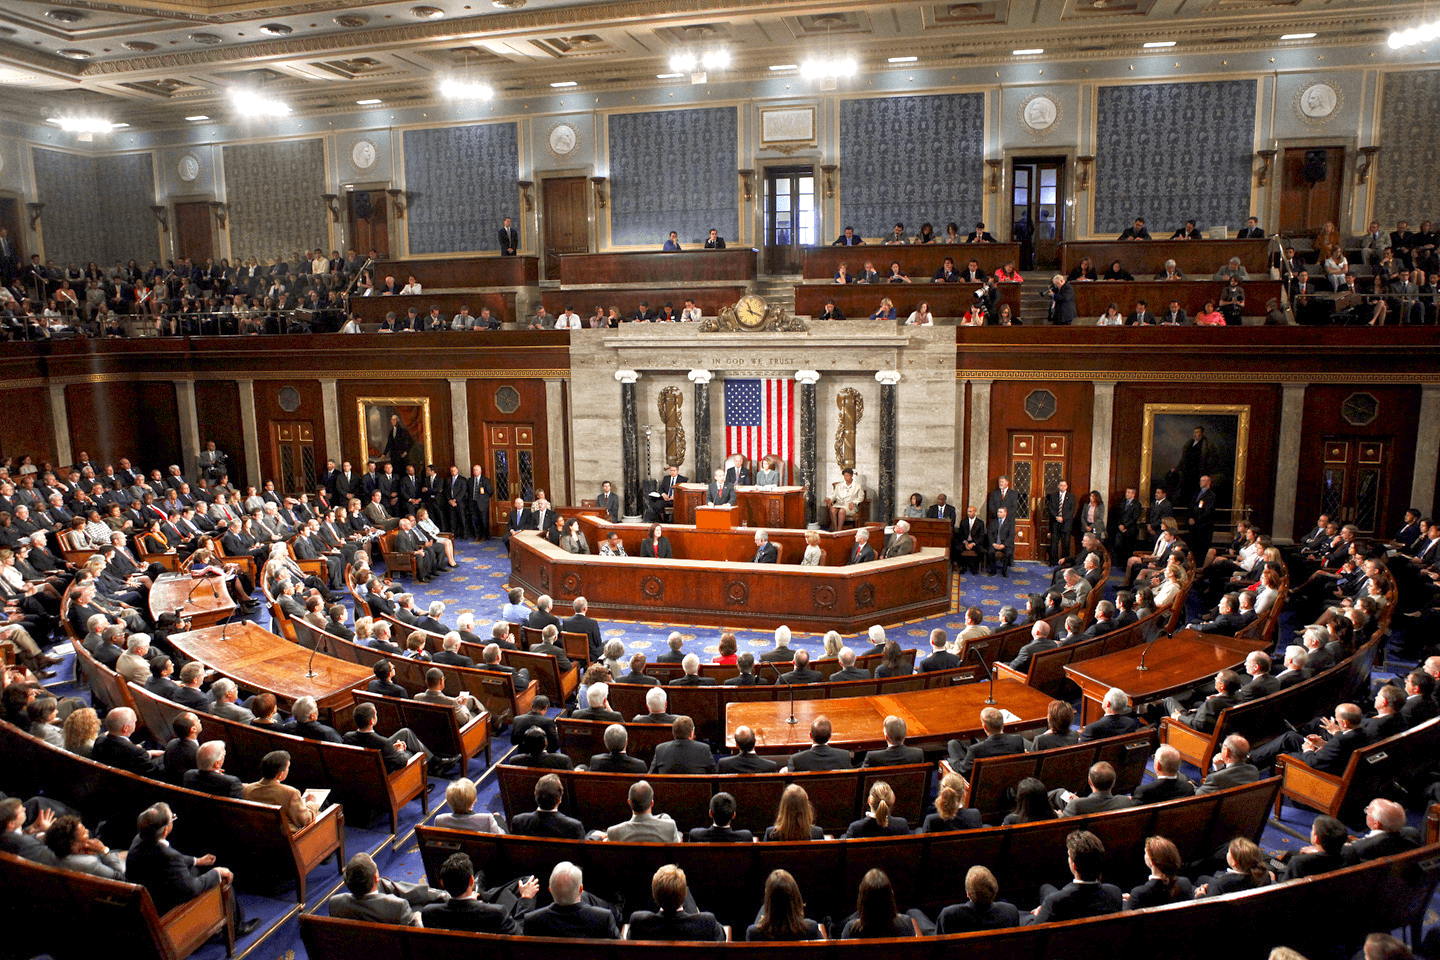 Obama Gave Impression Congress Has No Authority or Power